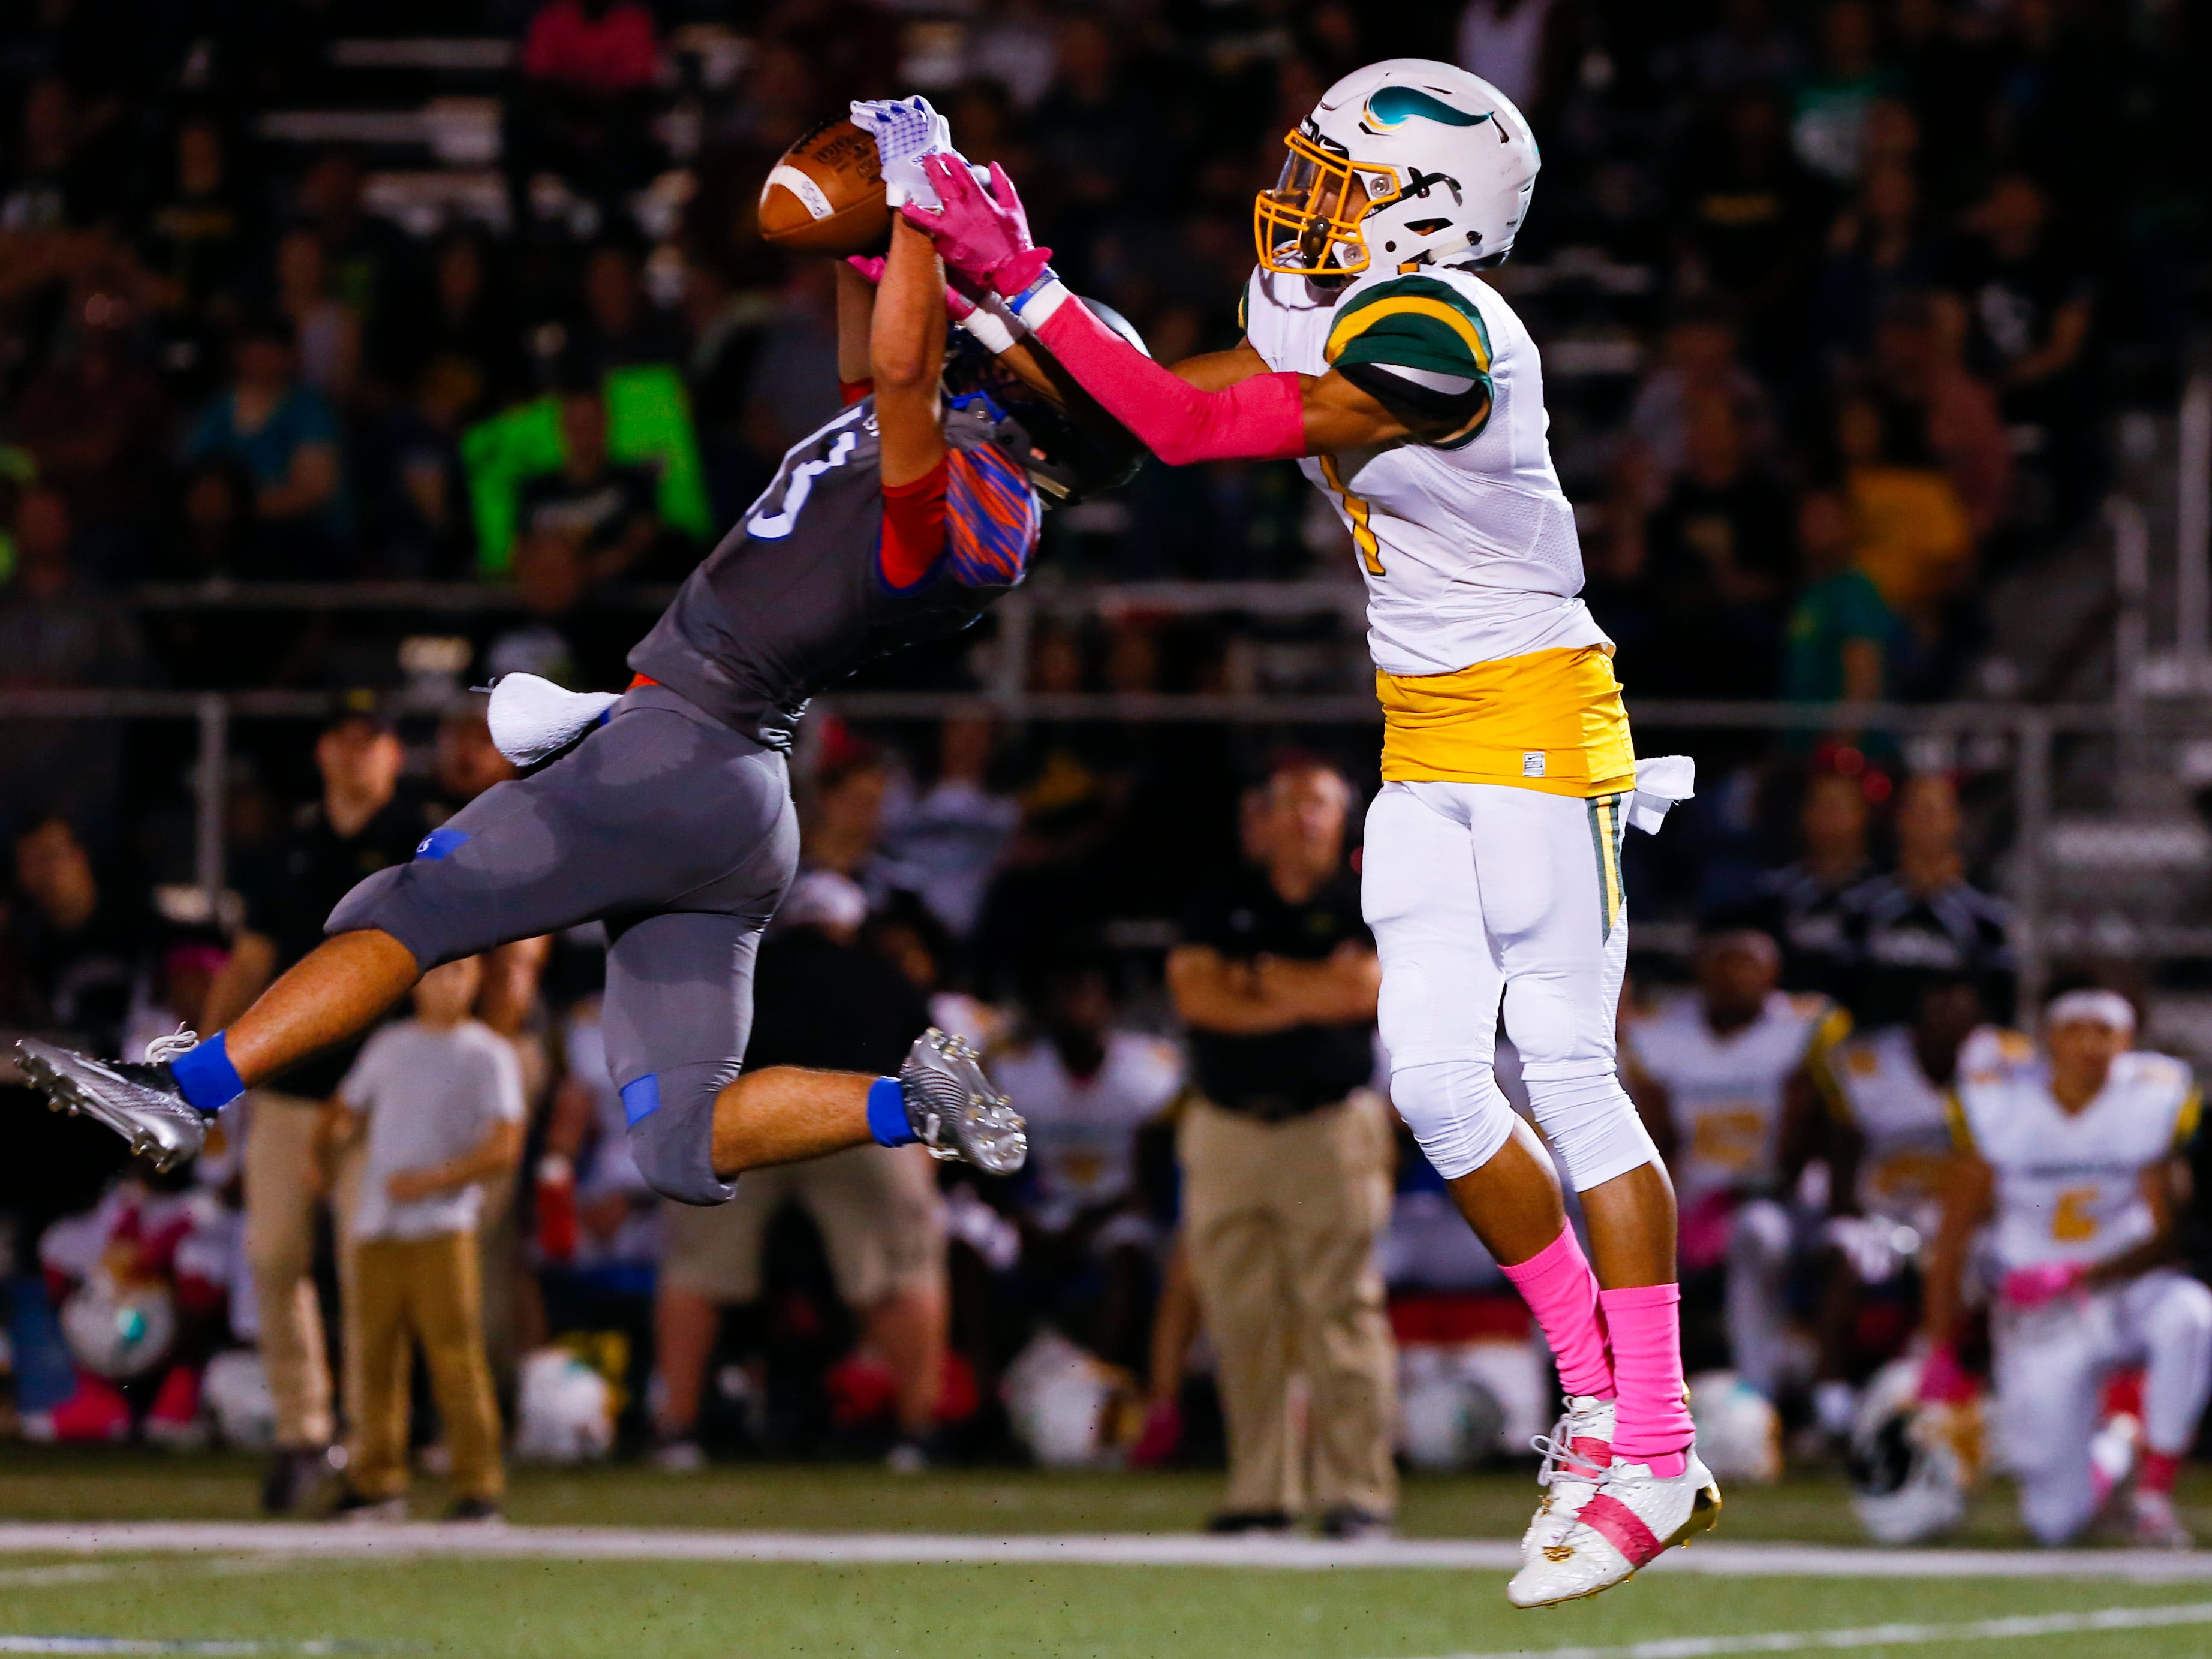 Hillcrest Hornets' Samson Cochran narrowly misses making an interception as Parkview's Tyrone Newburn breaks up the interception attempt during a game at Hillcrest on Friday, Oct. 5, 2018